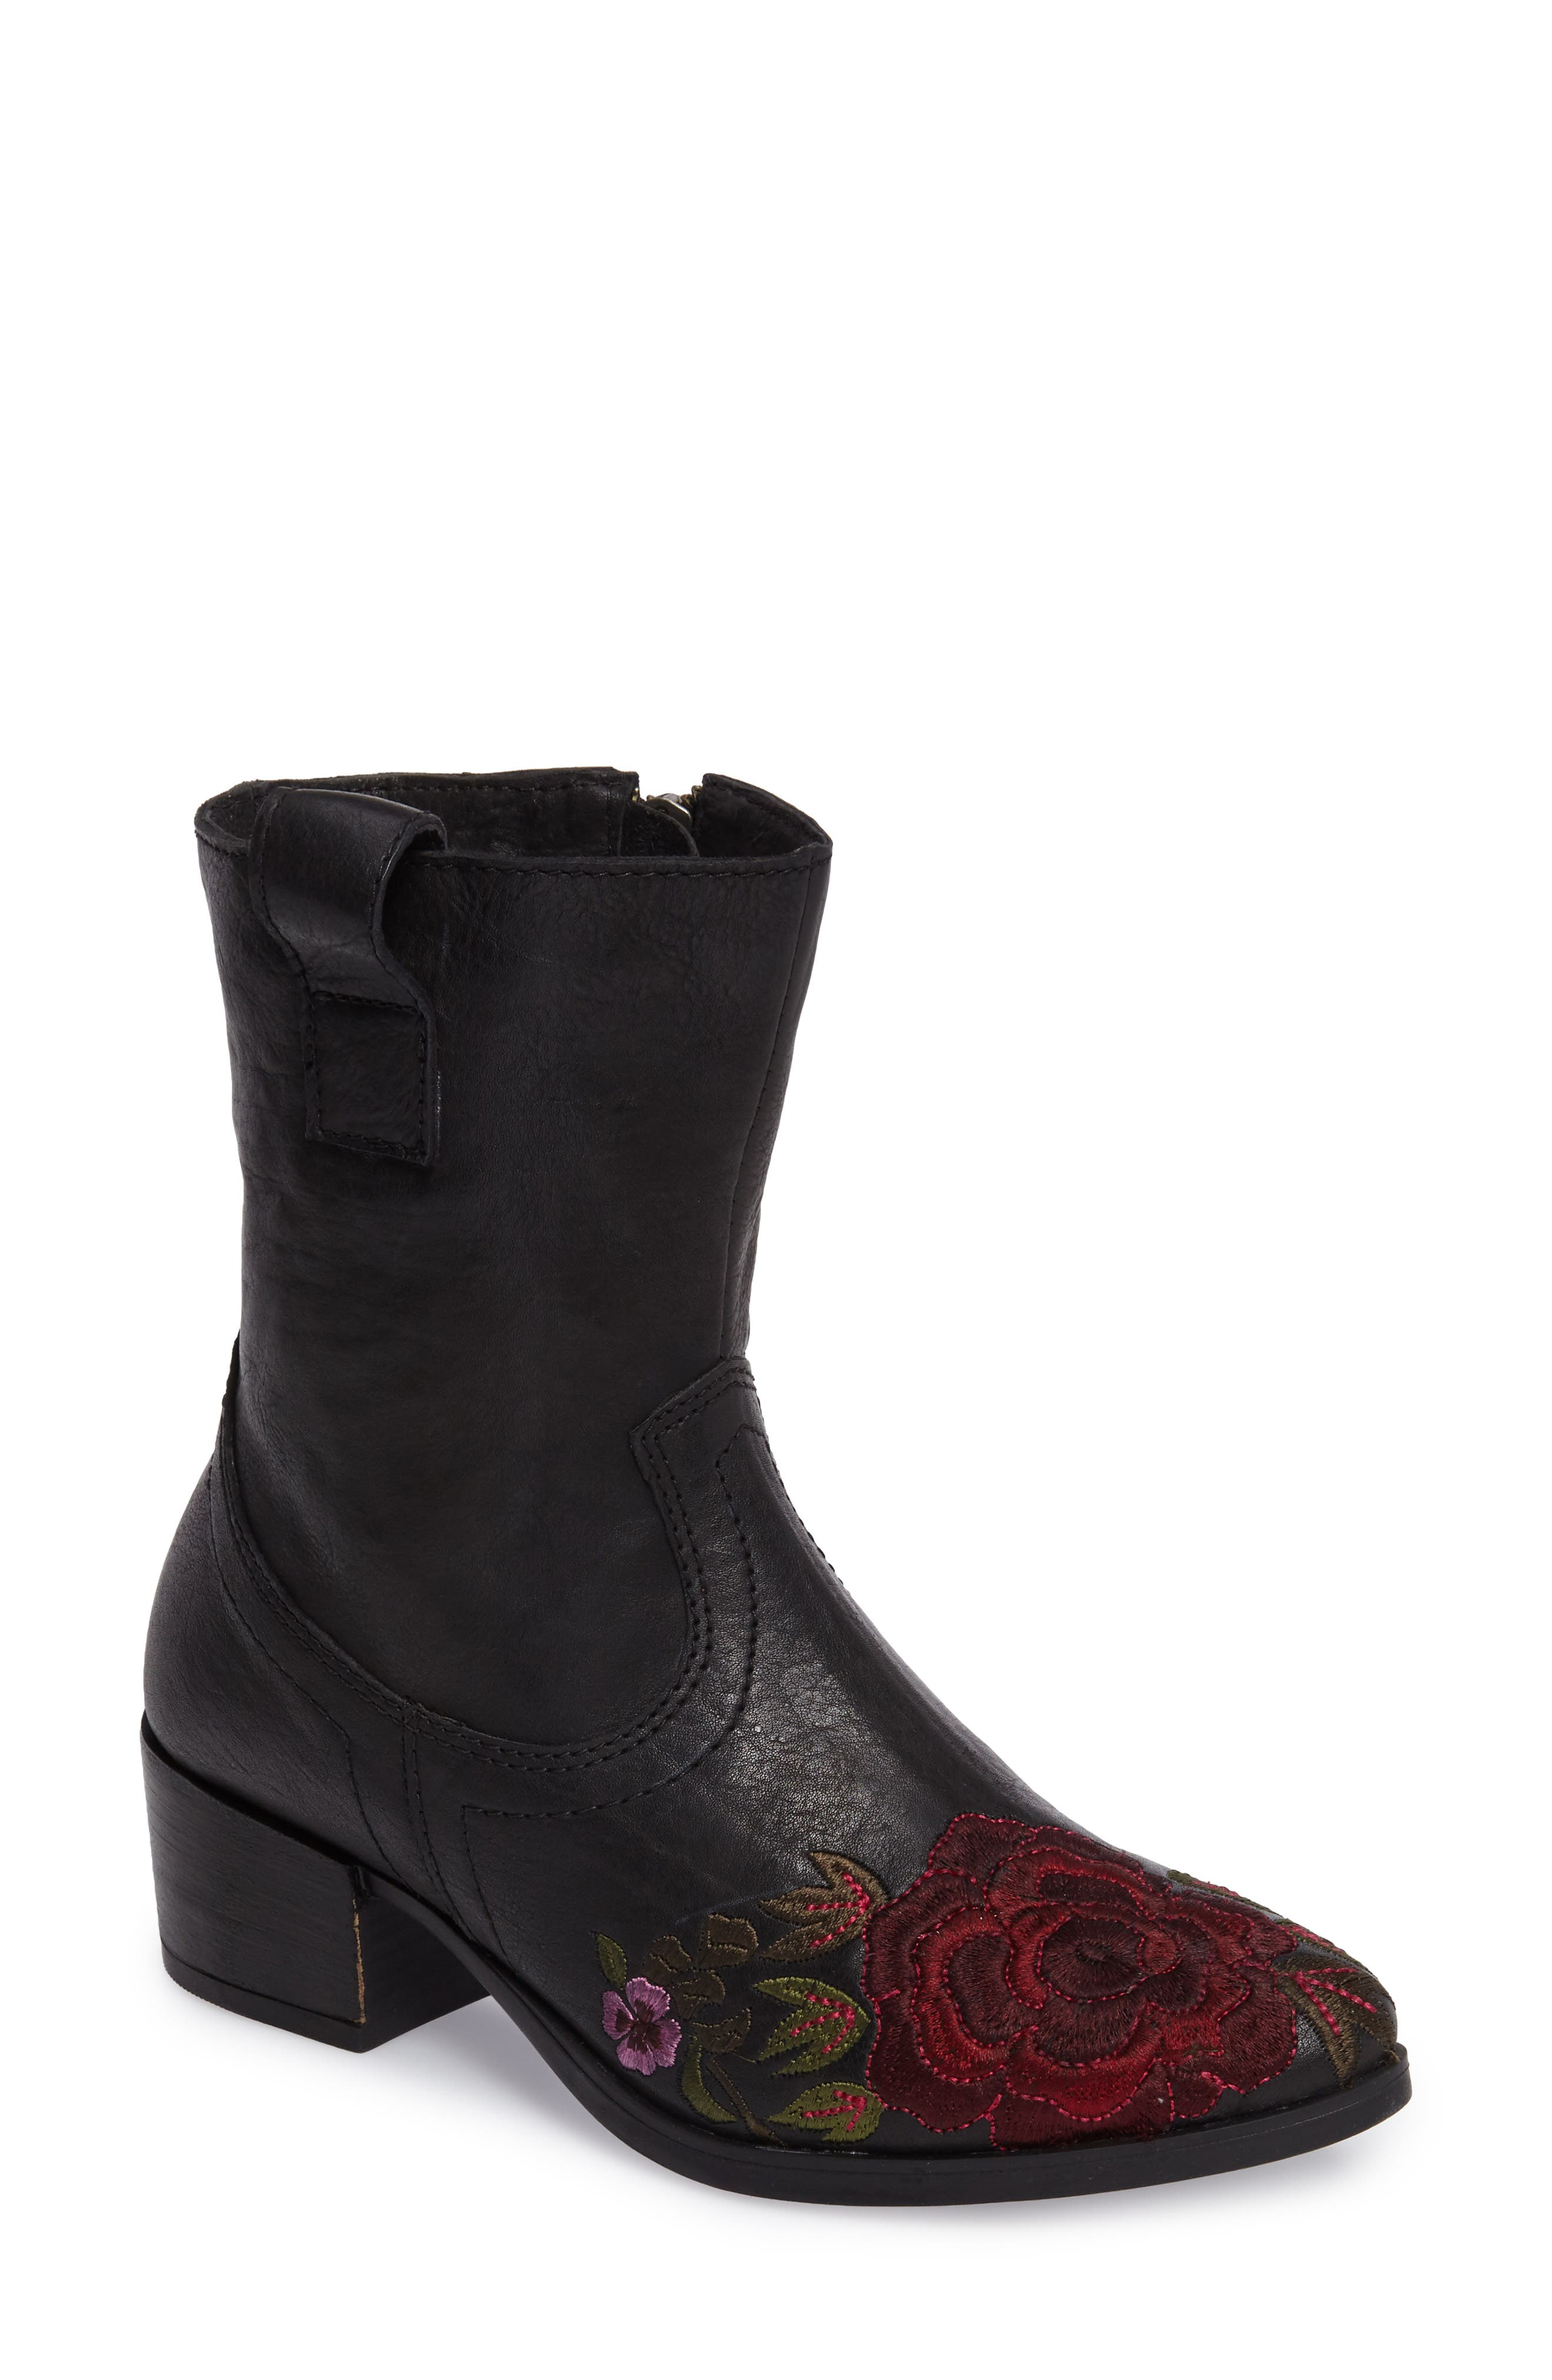 Sheridan Mia Shallot Floral Embroidered Bootie (Women)